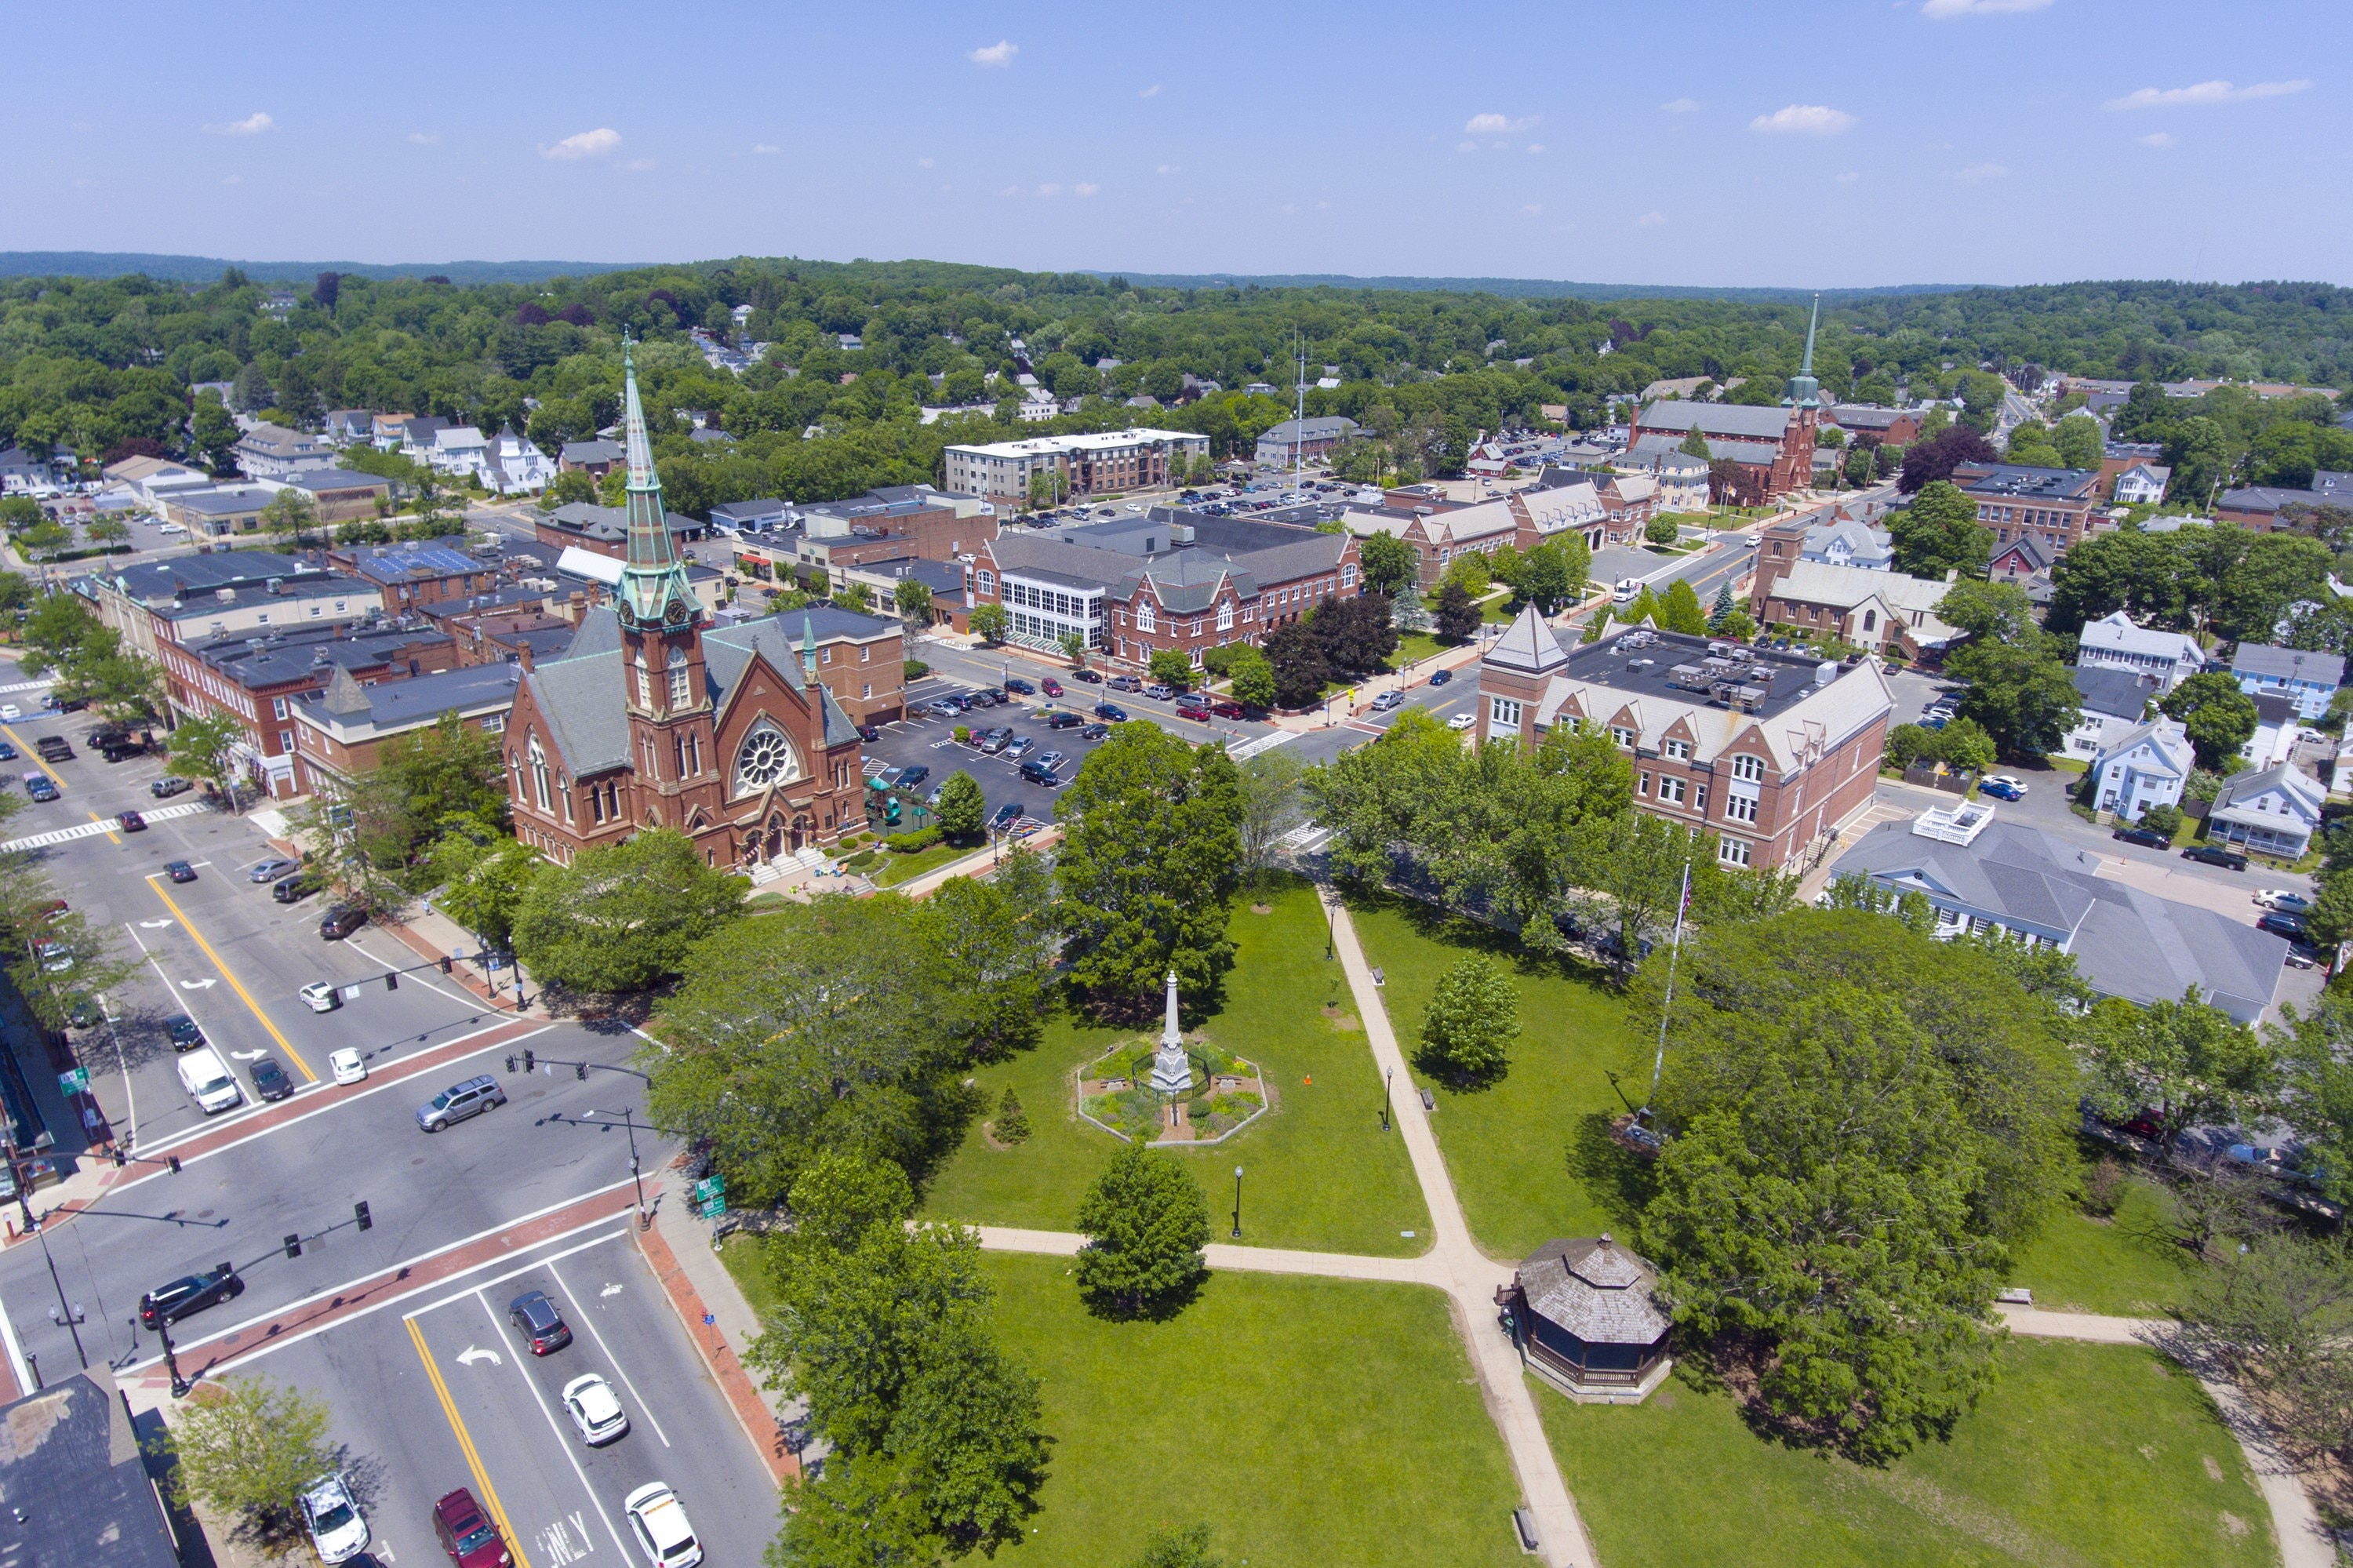 Aerial view of Natick by Shutterstock